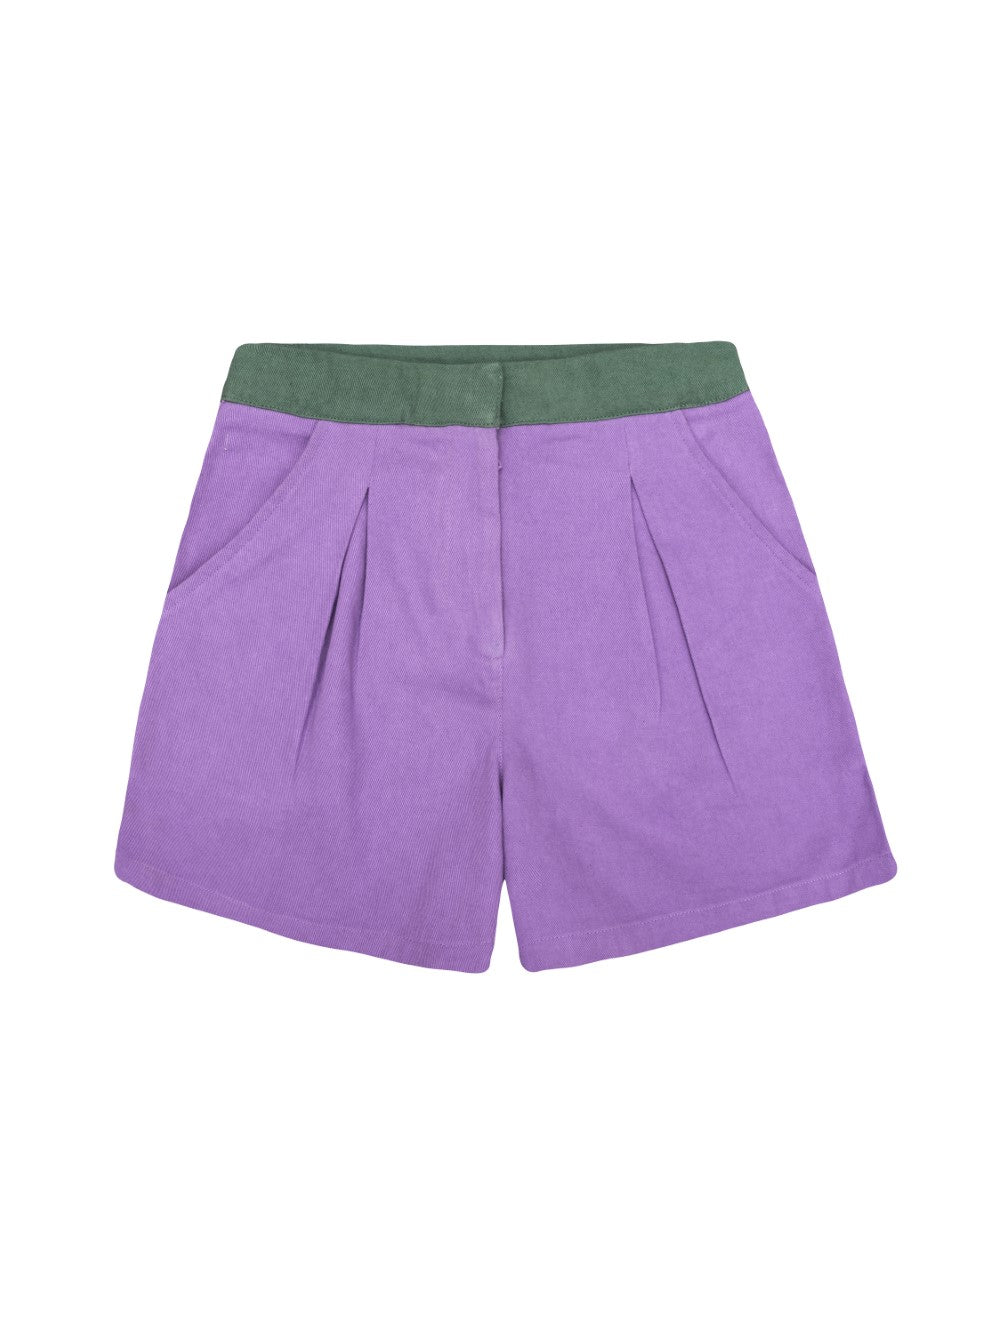 Green and Purple Shorts